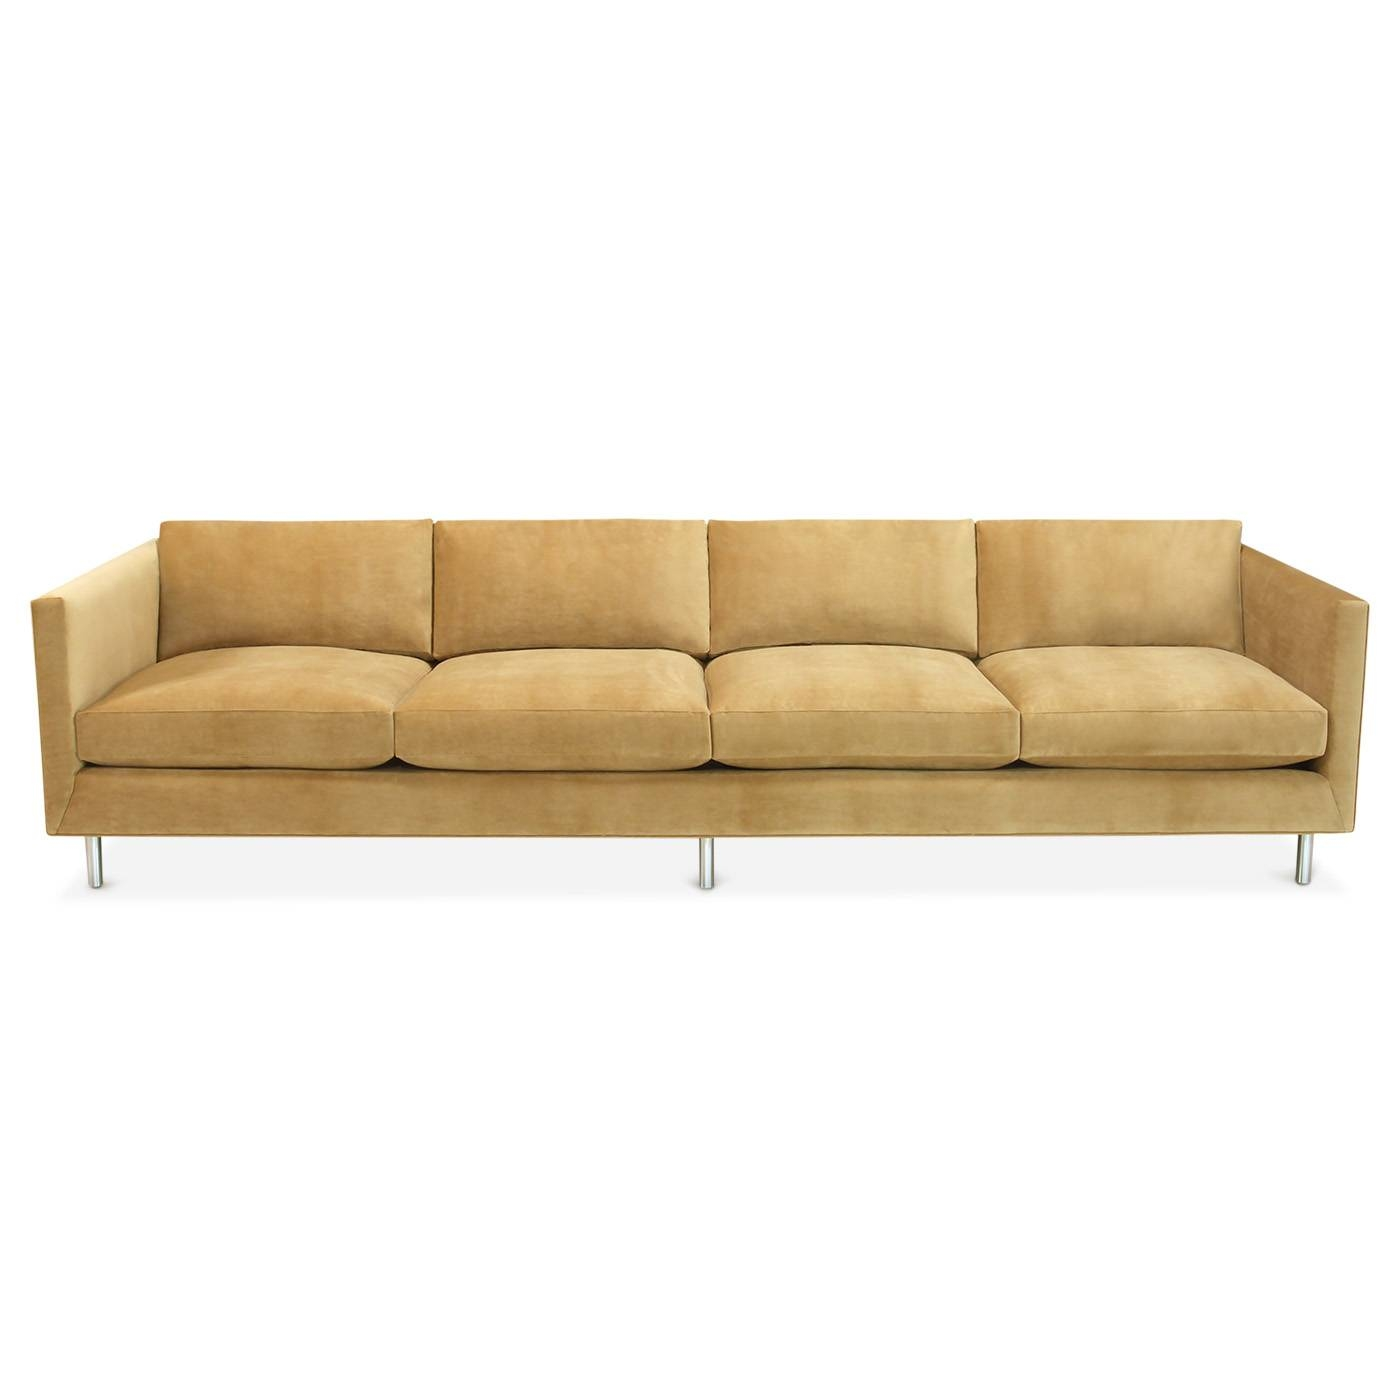 Topanga Four-Seater Sofa | Modern Furniture | Jonathan Adler regarding Four Seater Sofas (Image 25 of 30)